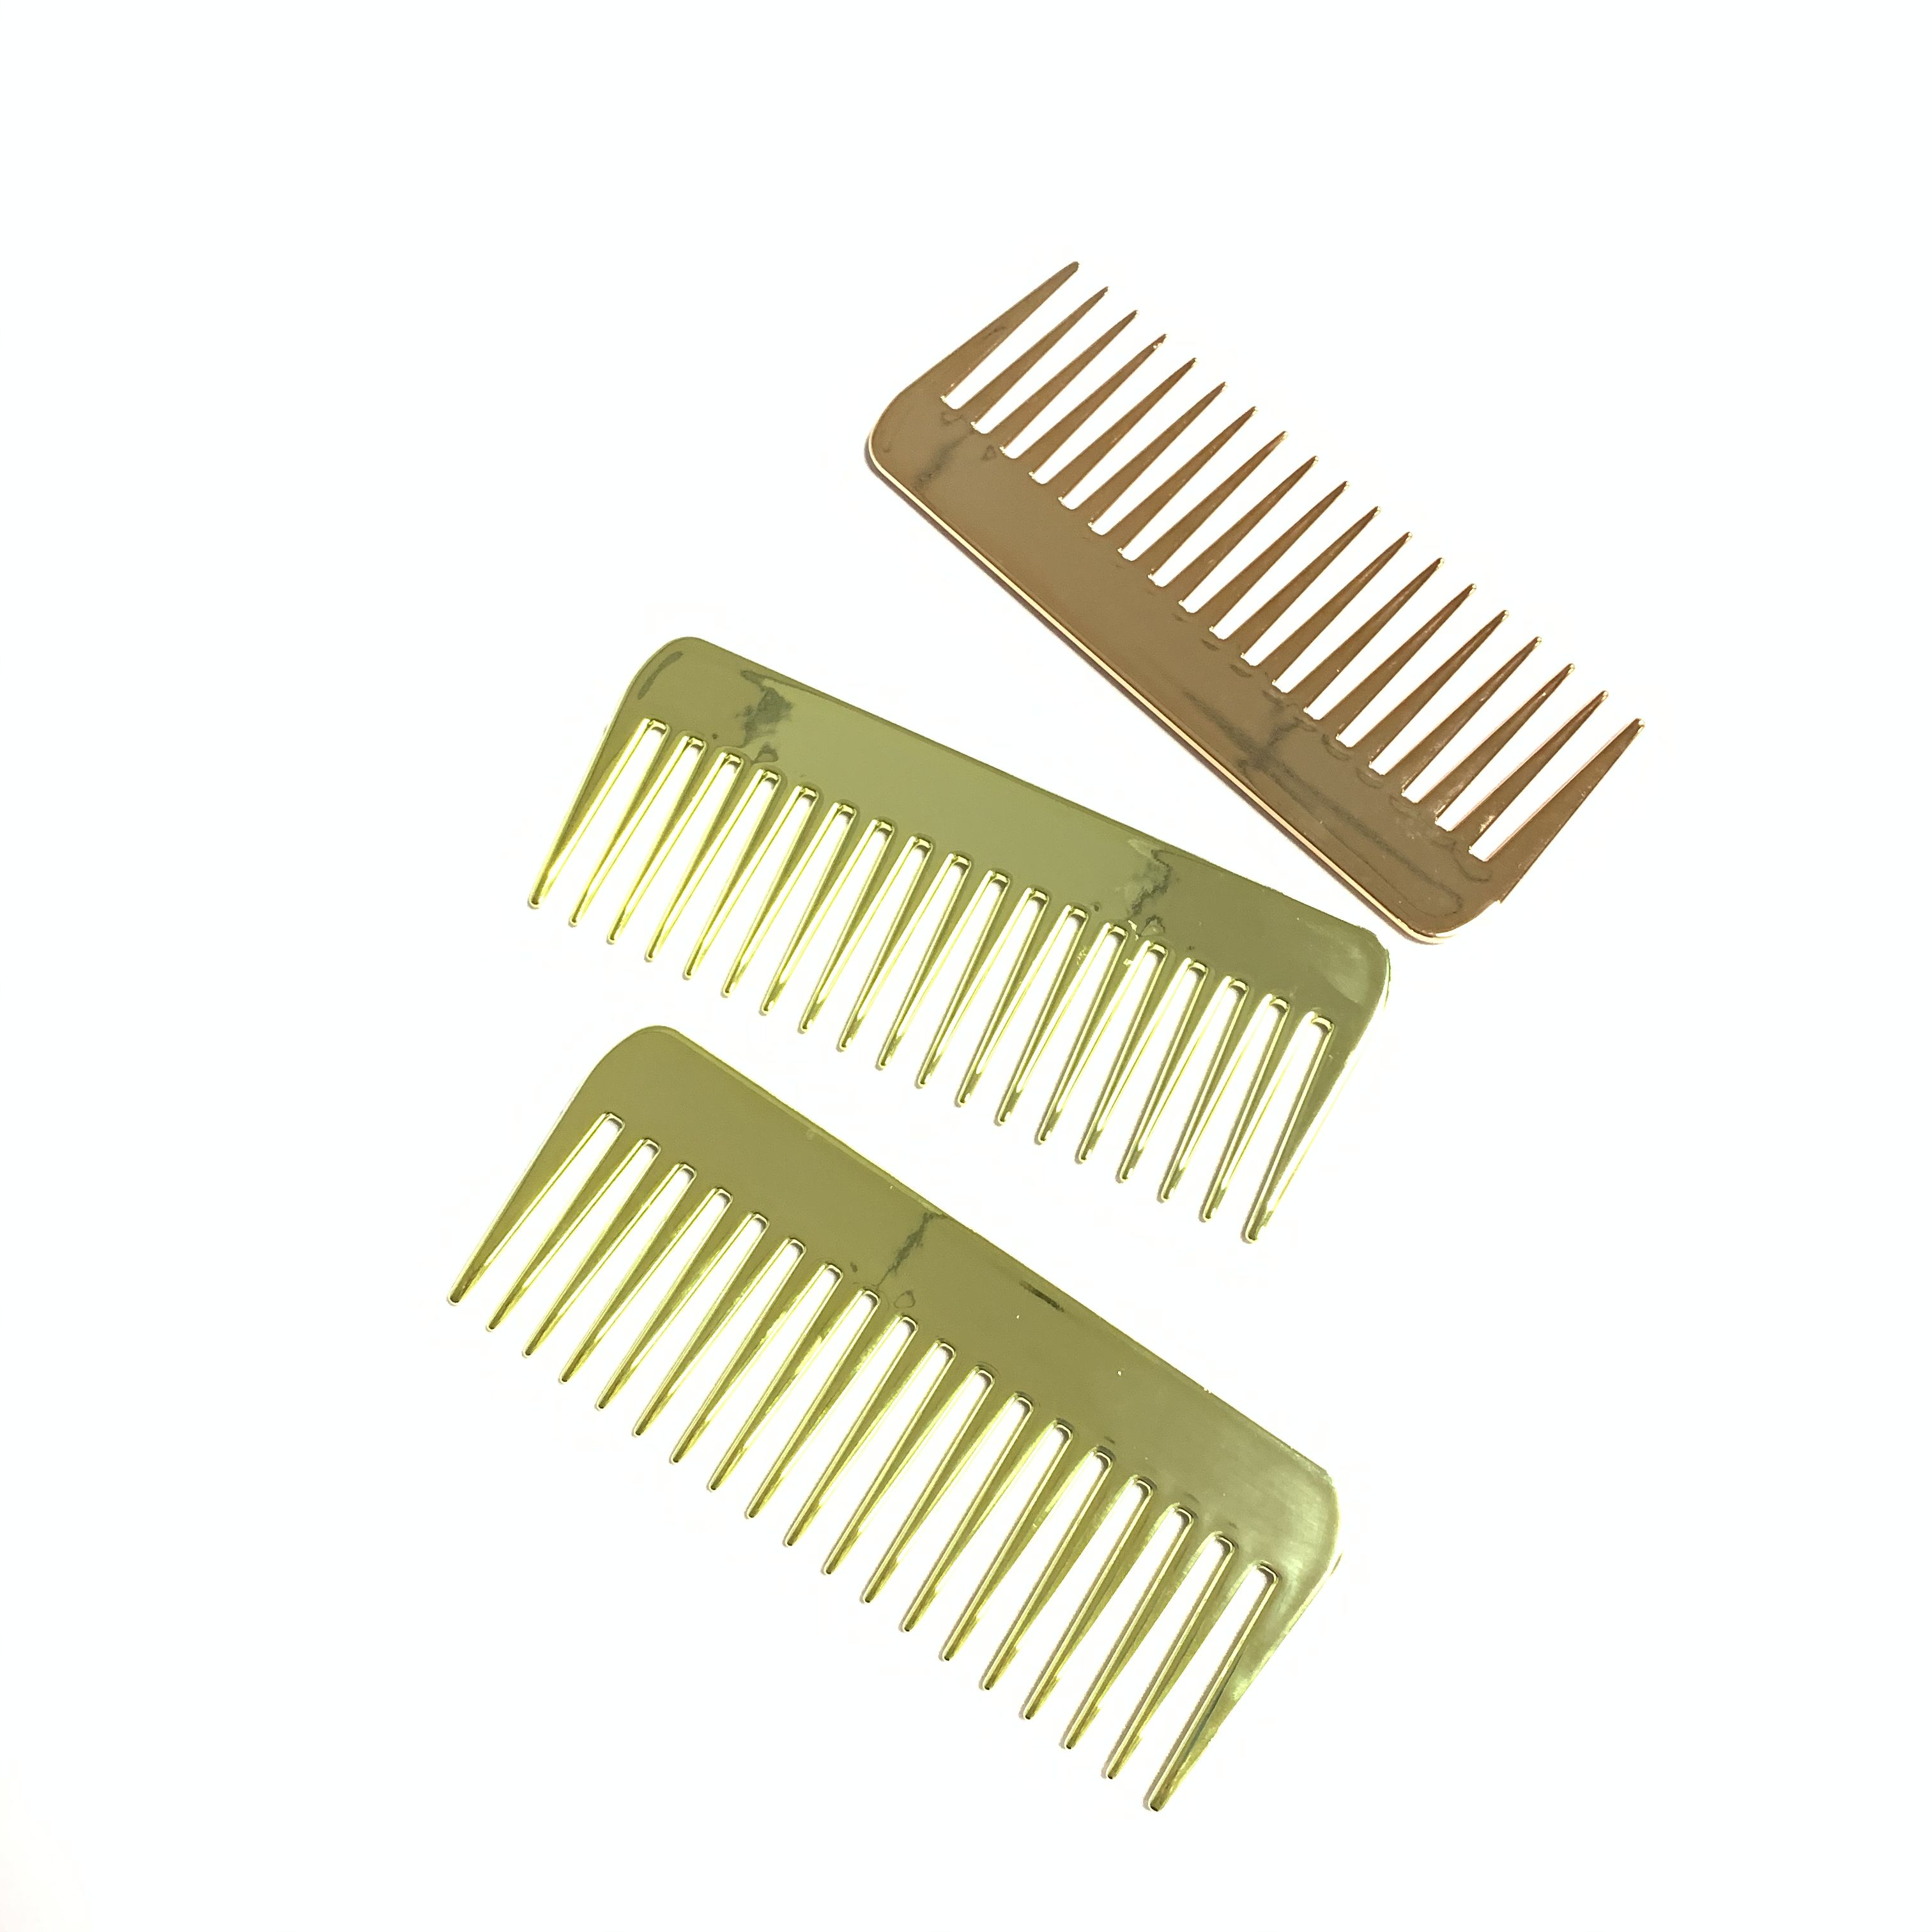 2020 New Comb Plastic Gold Wide Tooth Comb Hair Brush Tangle Gold Rose Gold Hair Comb